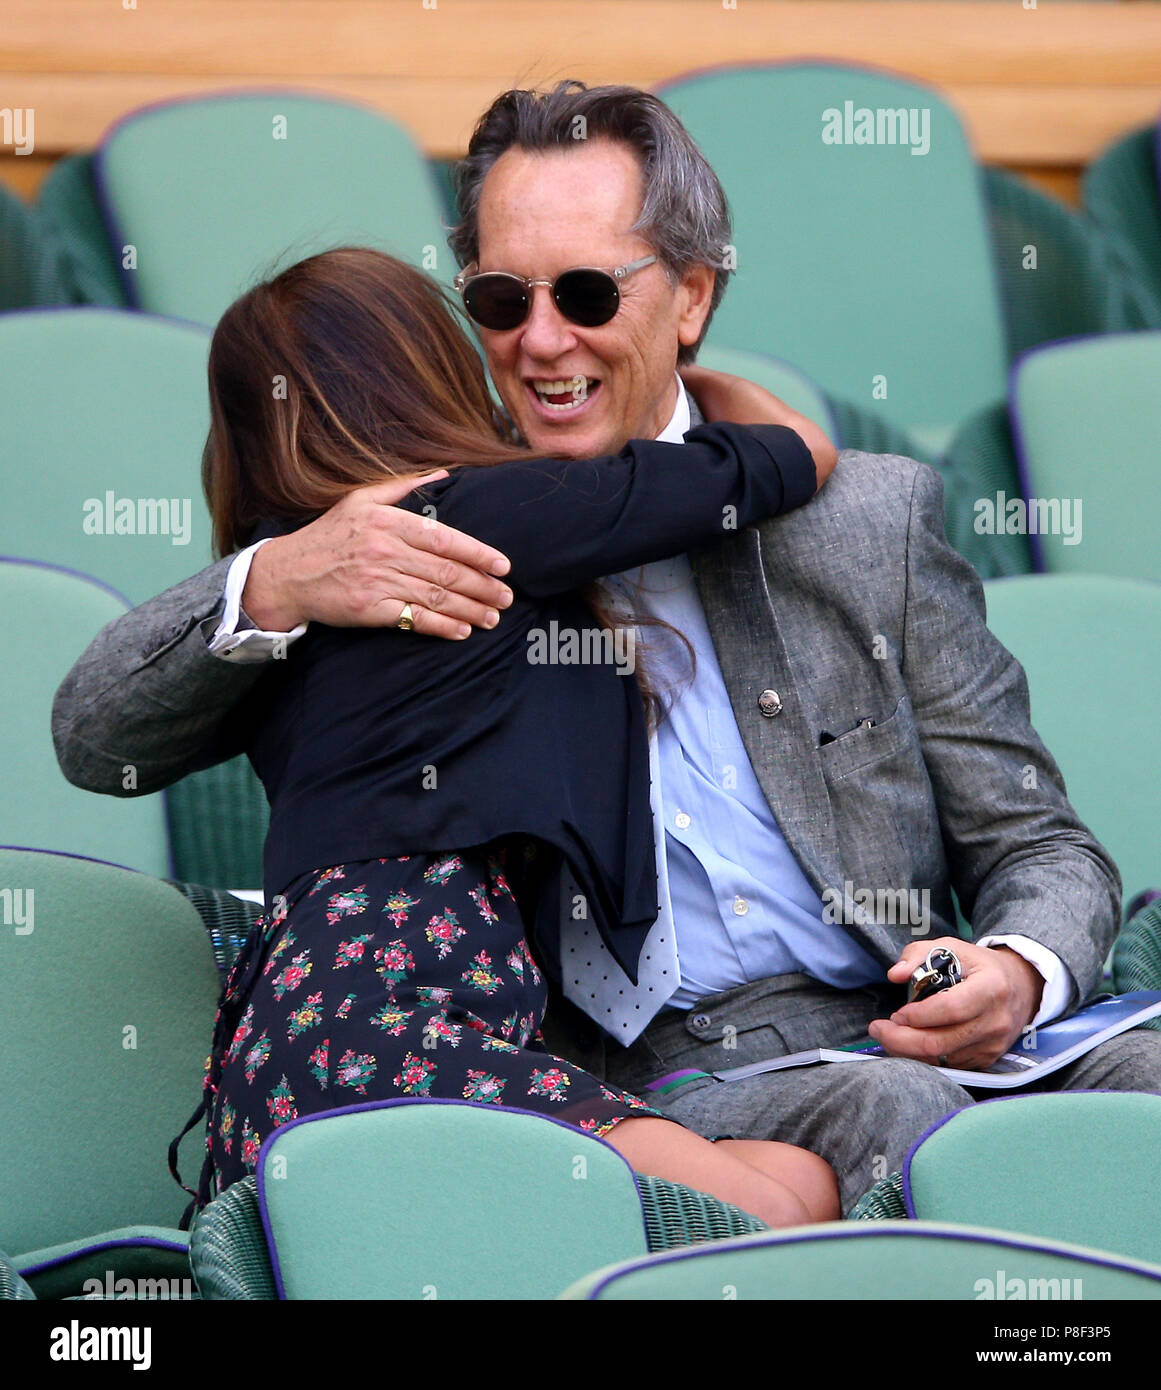 Richard E. Grant and Binti Velani in the royal box on centre court on day nine of the Wimbledon Championships at the All England Lawn Tennis and Croquet Club, Wimbledon. Stock Photo